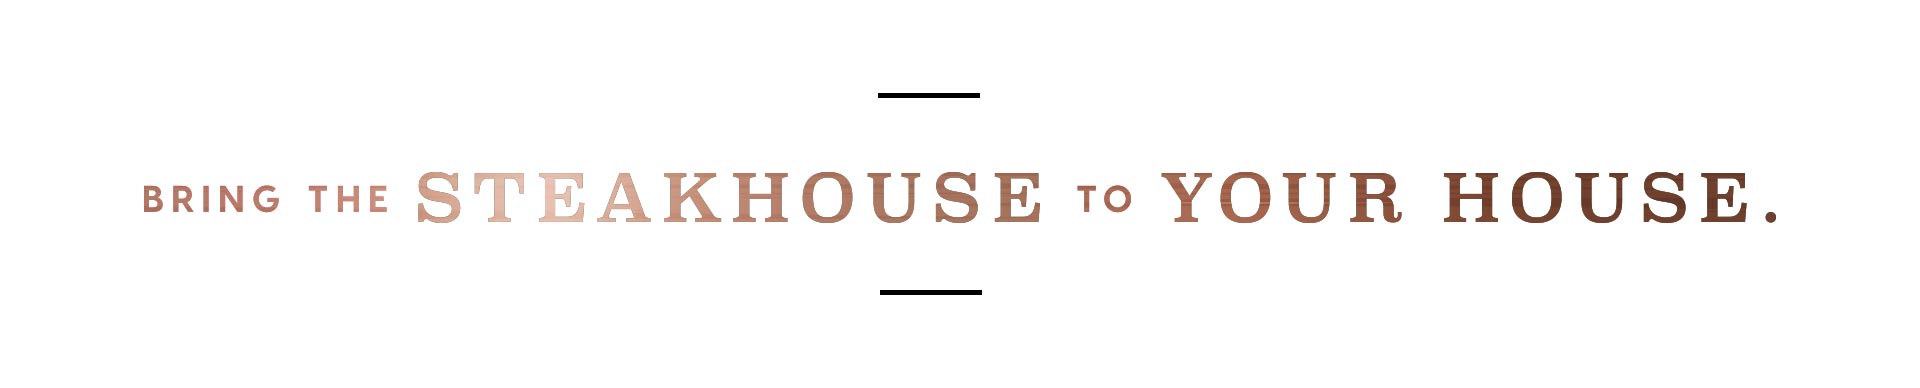 "Decorative text: ""Bring the Steakhouse to Your House."""